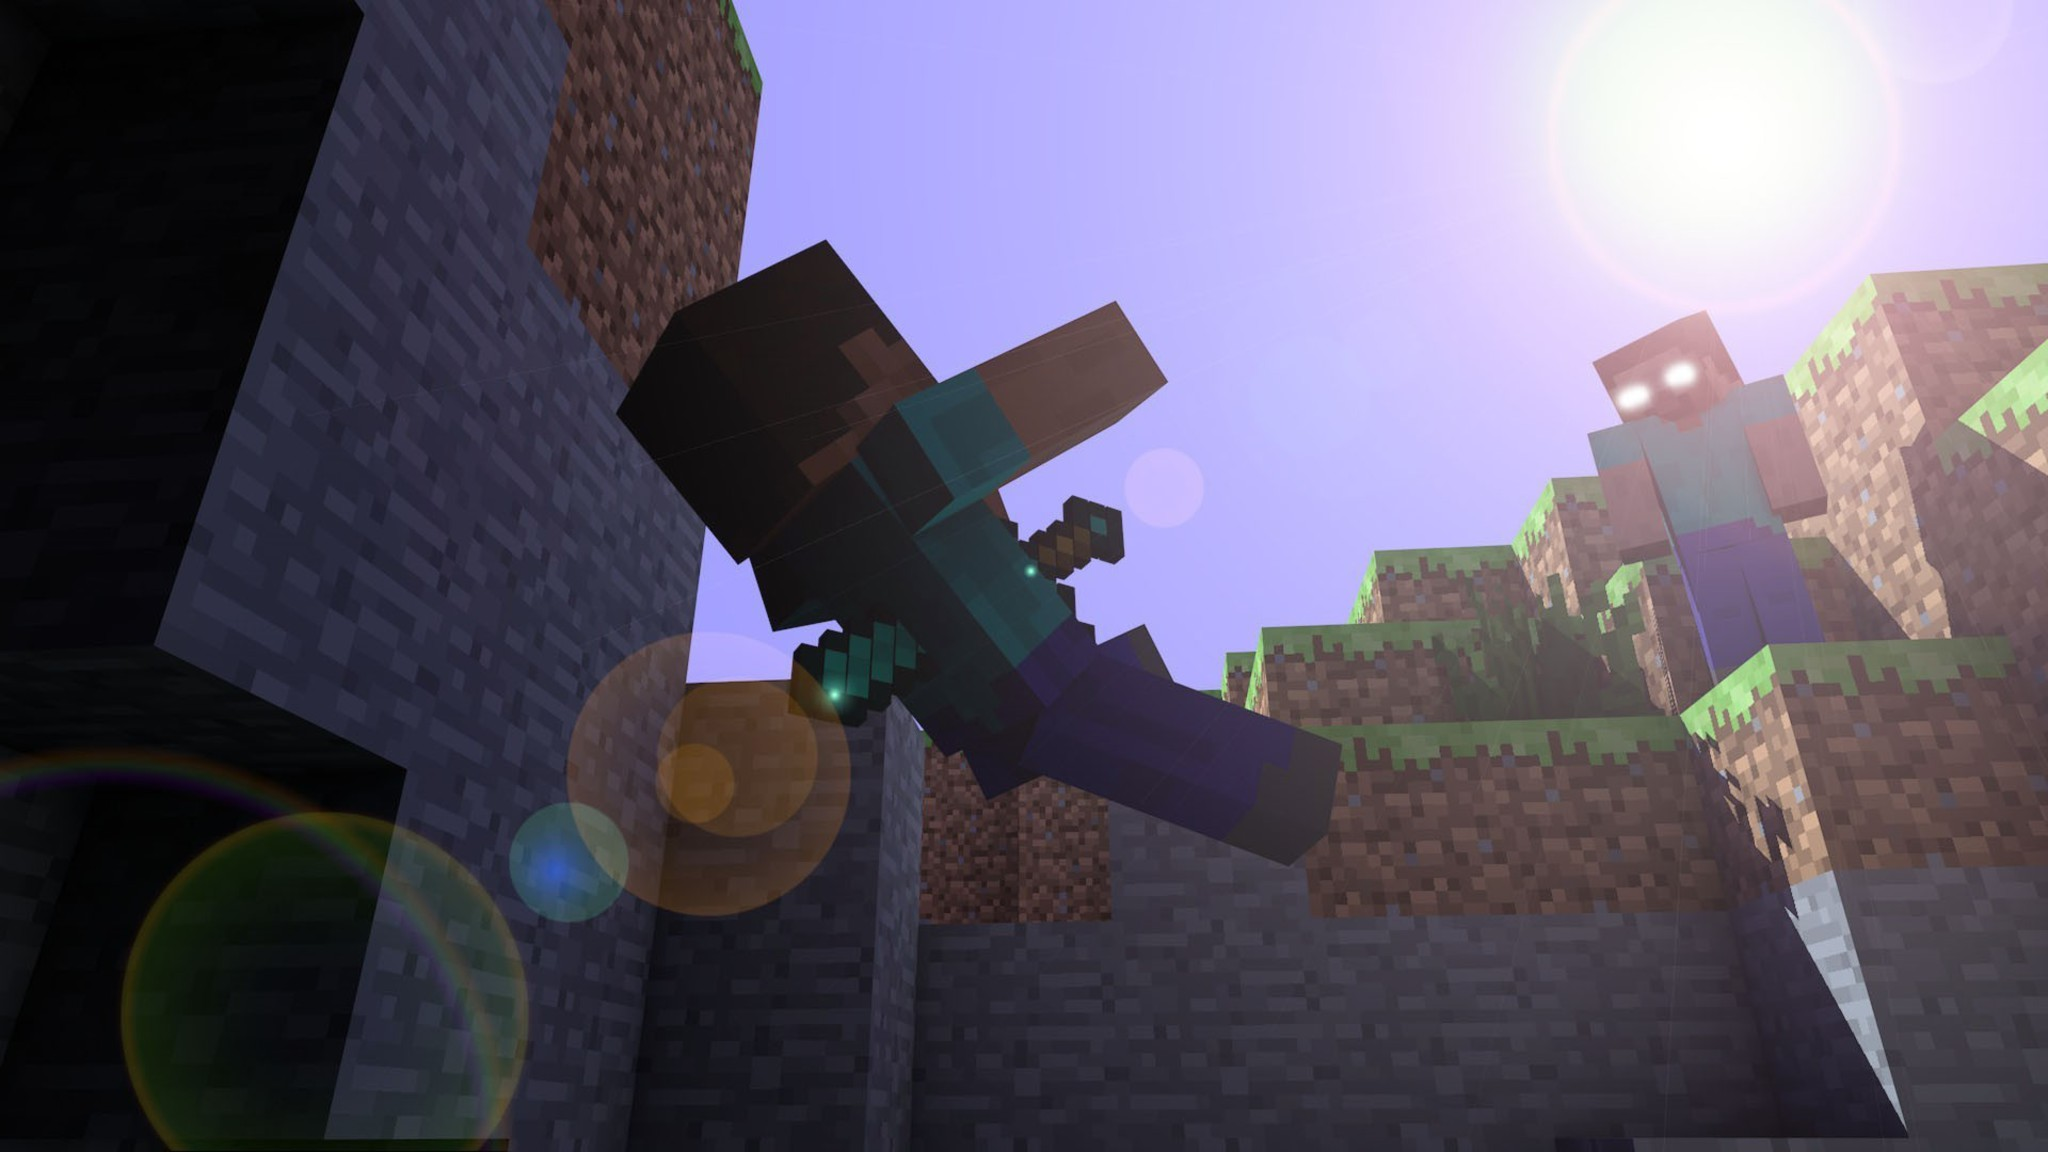 Minecraft Sword Wallpaper Hd minecraft swords wallpaper allwallpaper ...